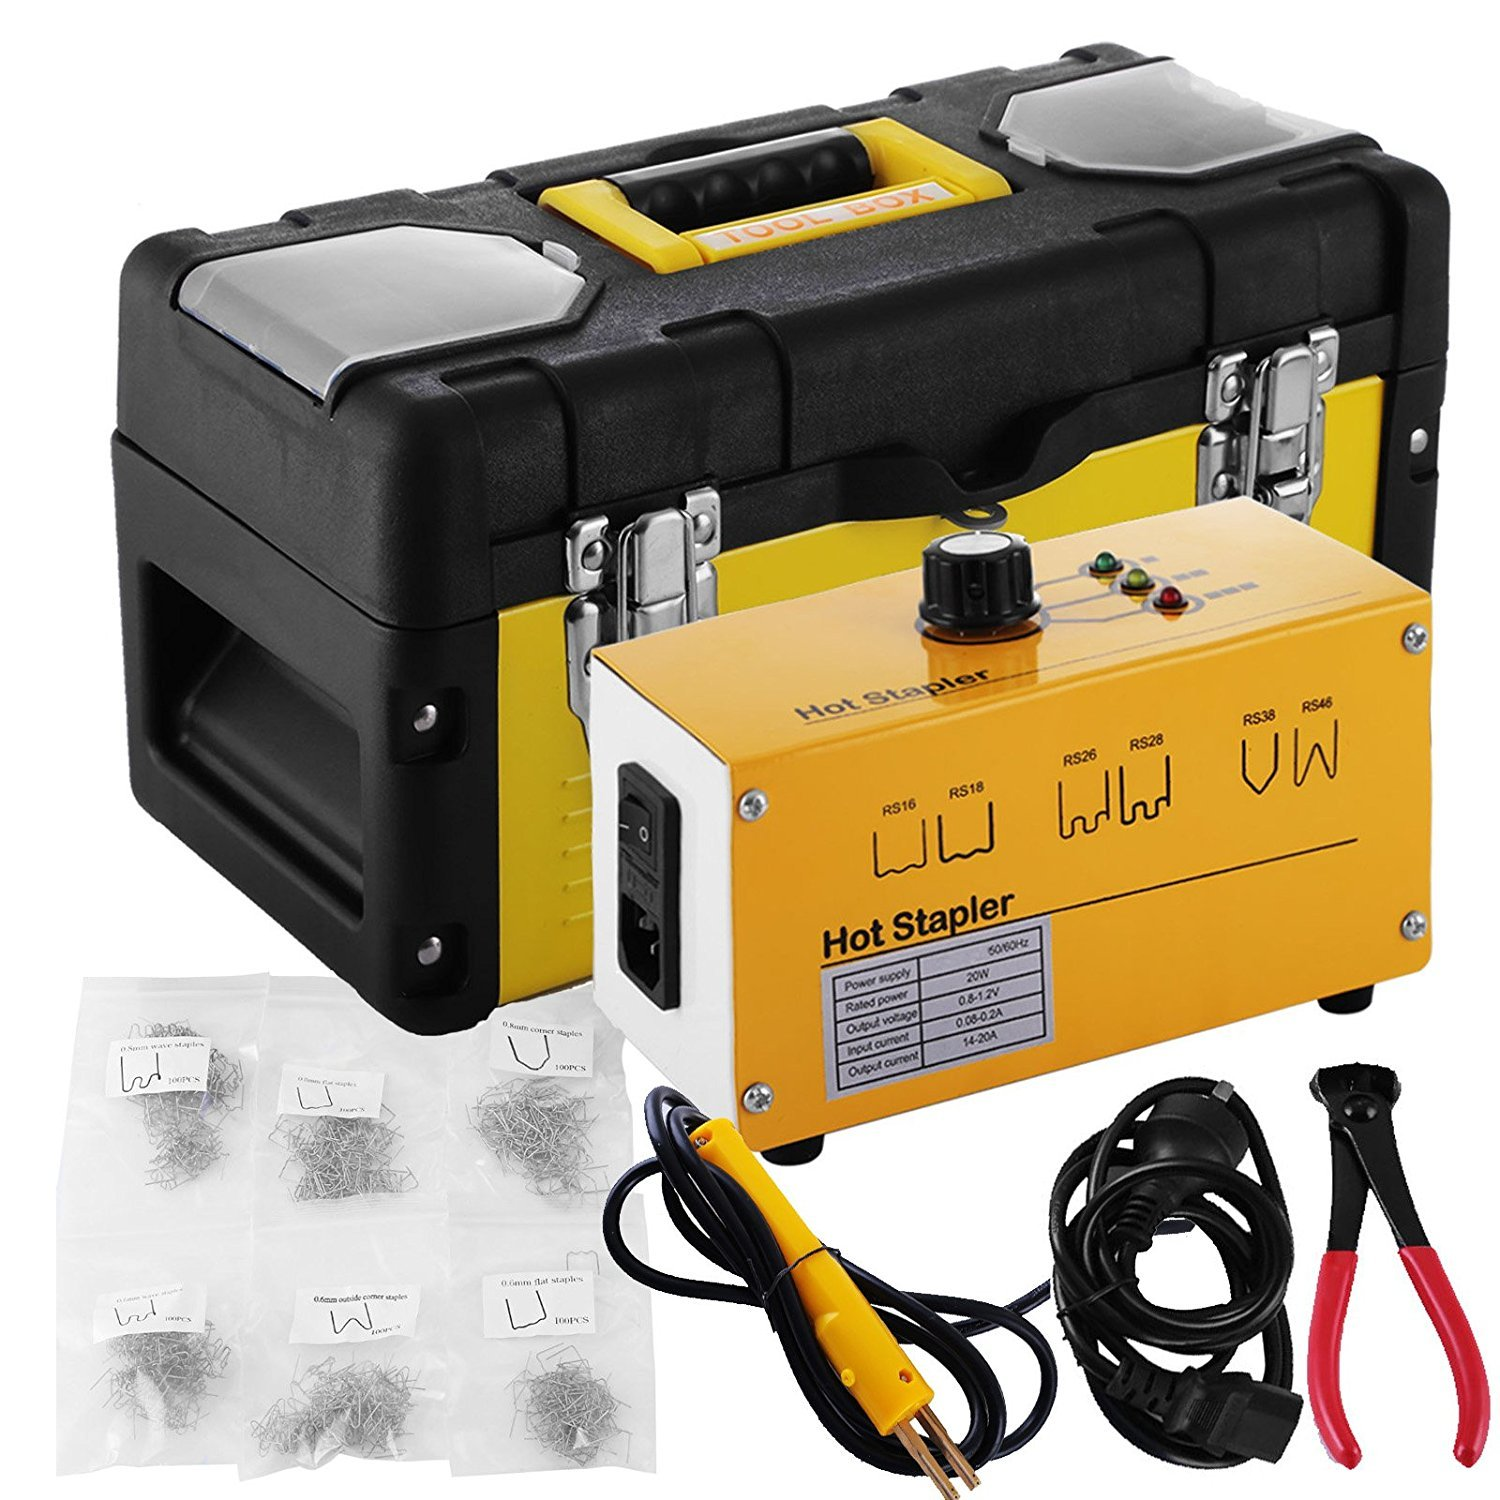 Go2Home Plastic Bumper Repair Kit Hot Stapler Plastic Welder Staple Gun with Welders Carry Box and Snips, Yellow 20W